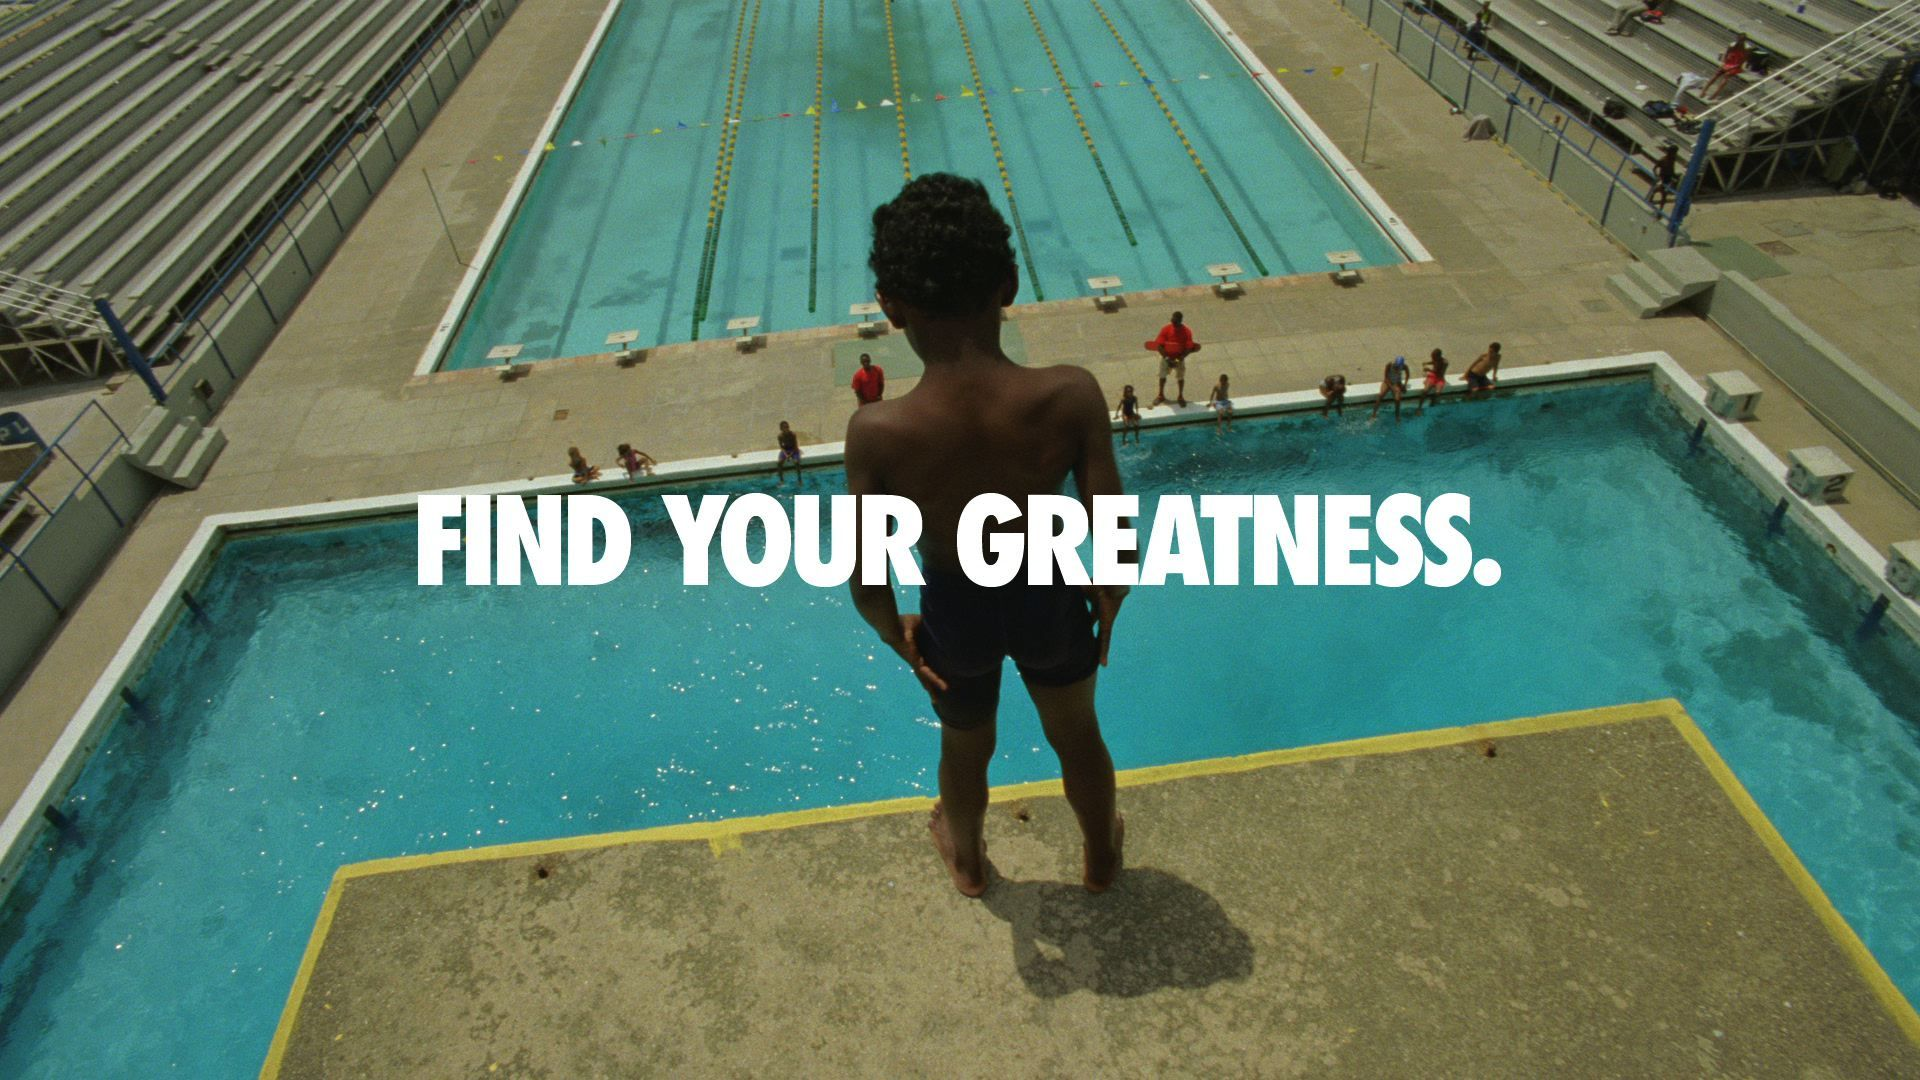 Nike_Find_Your_Greatness_Diver_original